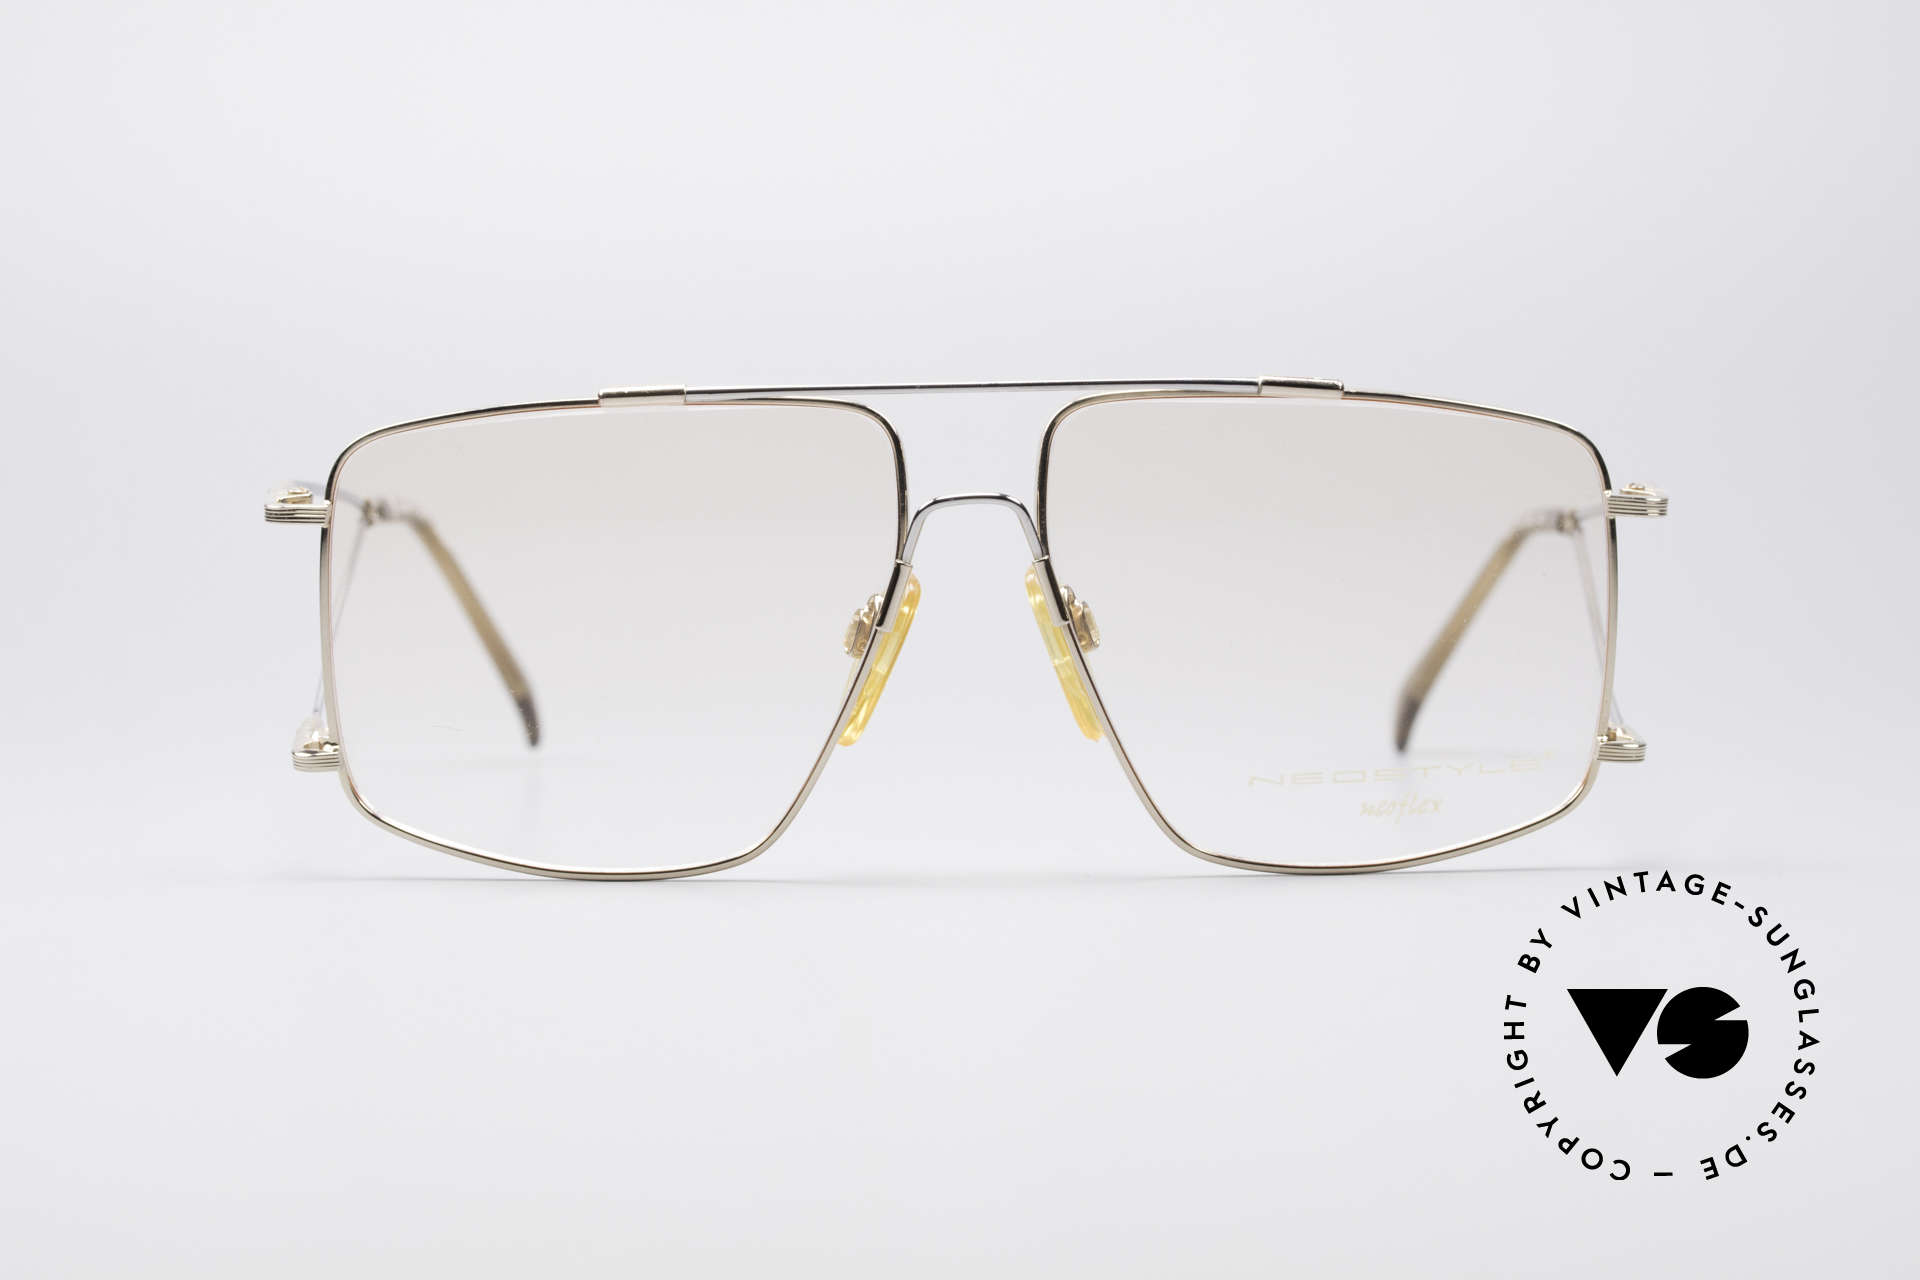 Neostyle Jet 40 Titanflex Vintage Glasses, incredible comfort thanks to TITANFLEX material!, Made for Men